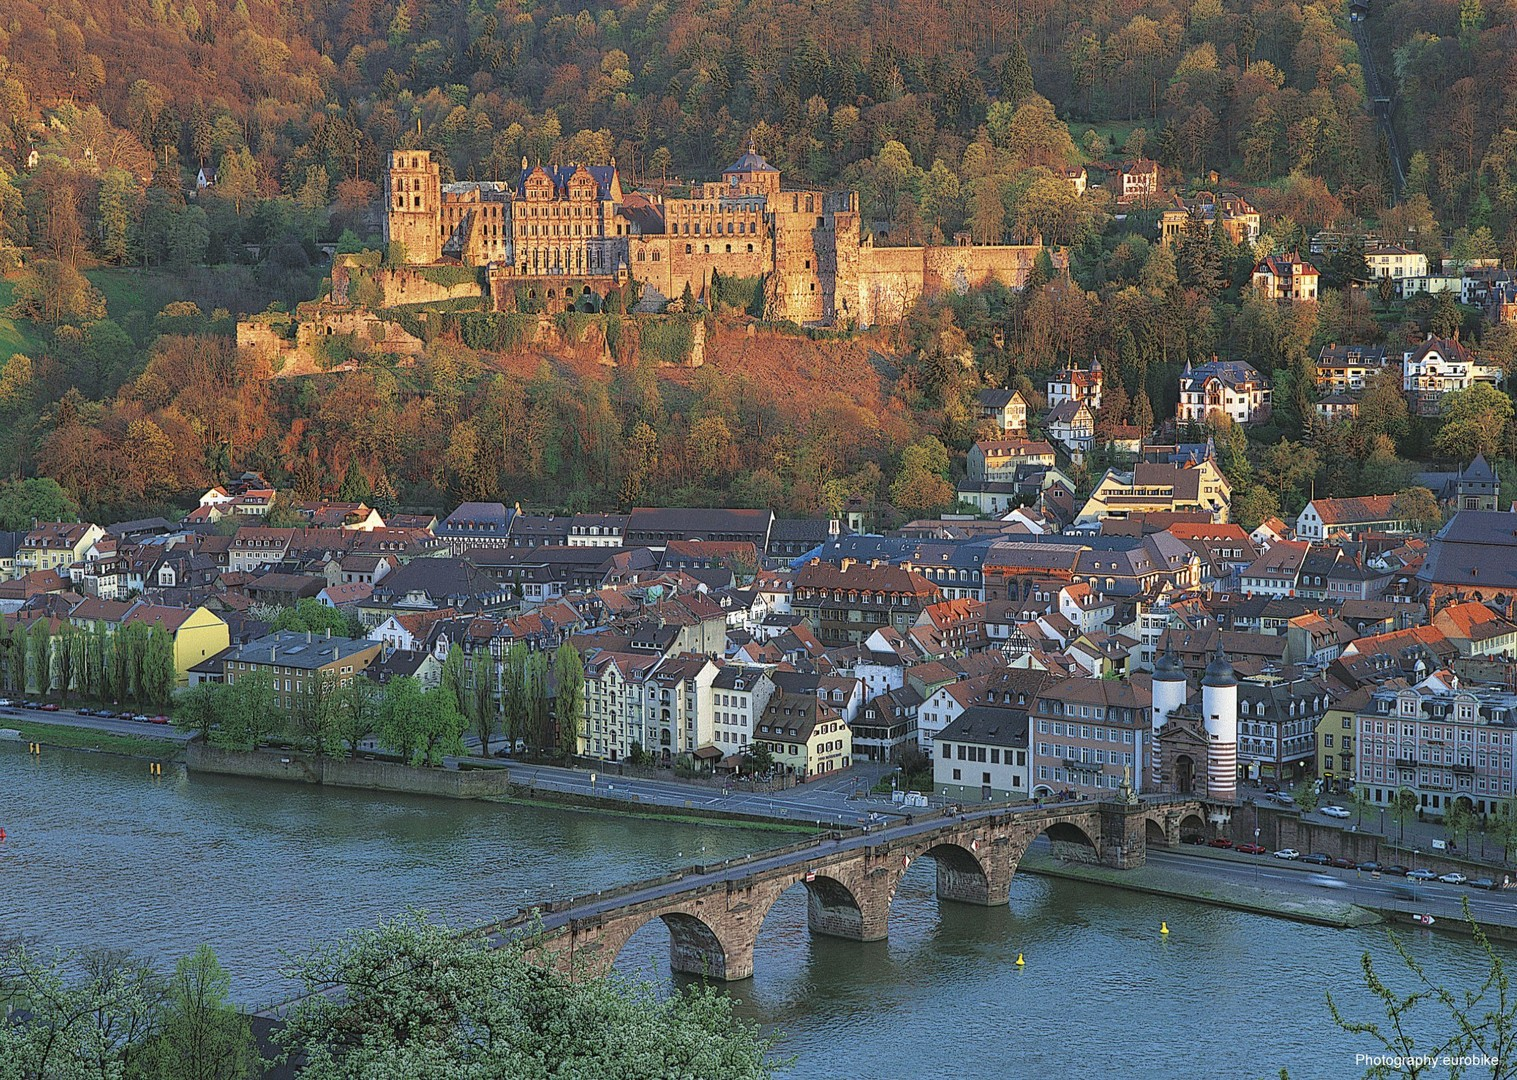 cycling-holiday-leisure-rhine-radweg-strassburg-mainz-heidelberg.jpg - Germany and France - The Rhine Valley - Self-Guided Leisure Cycling Holiday - Leisure Cycling